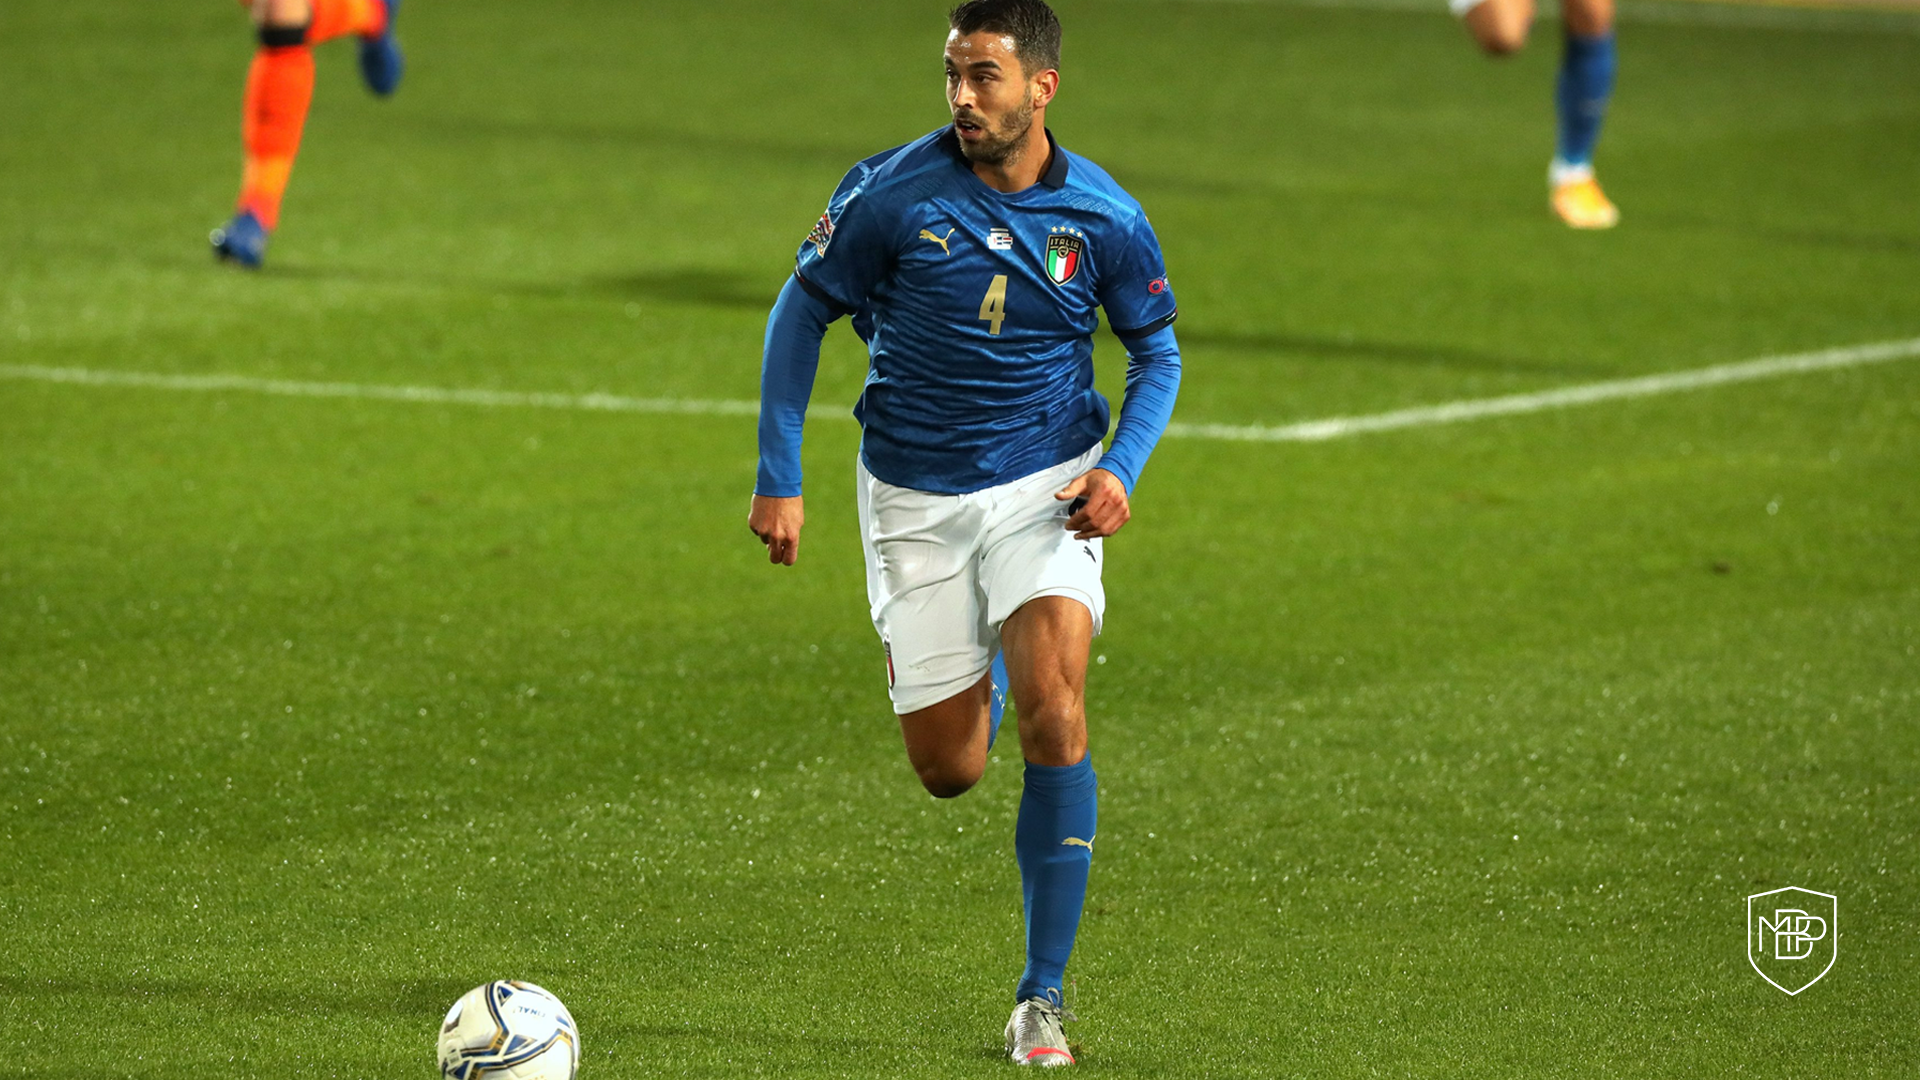 You are currently viewing Leonardo Spinazzola: best player of the EURO 2020 group phase